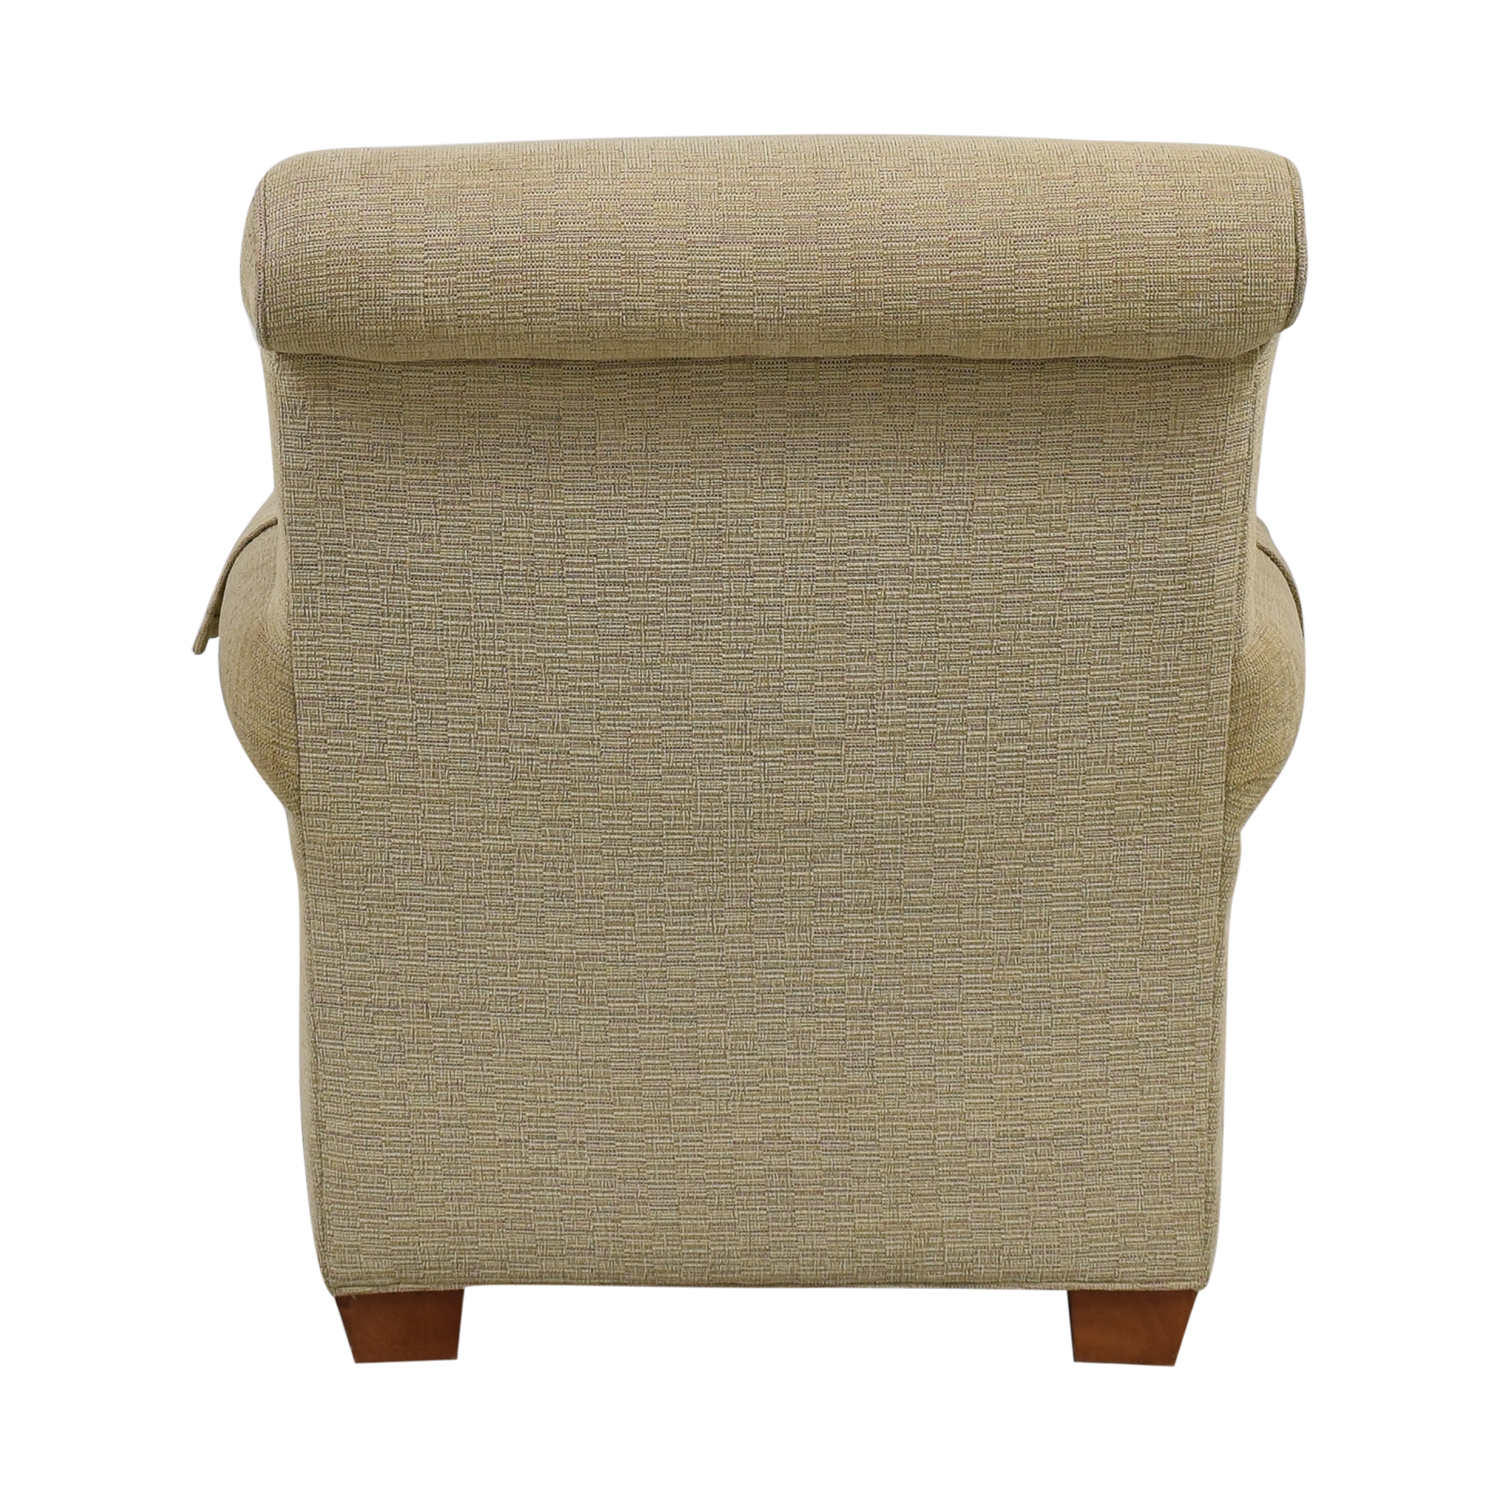 Macy's Macy's Upholstered Accent Chair price